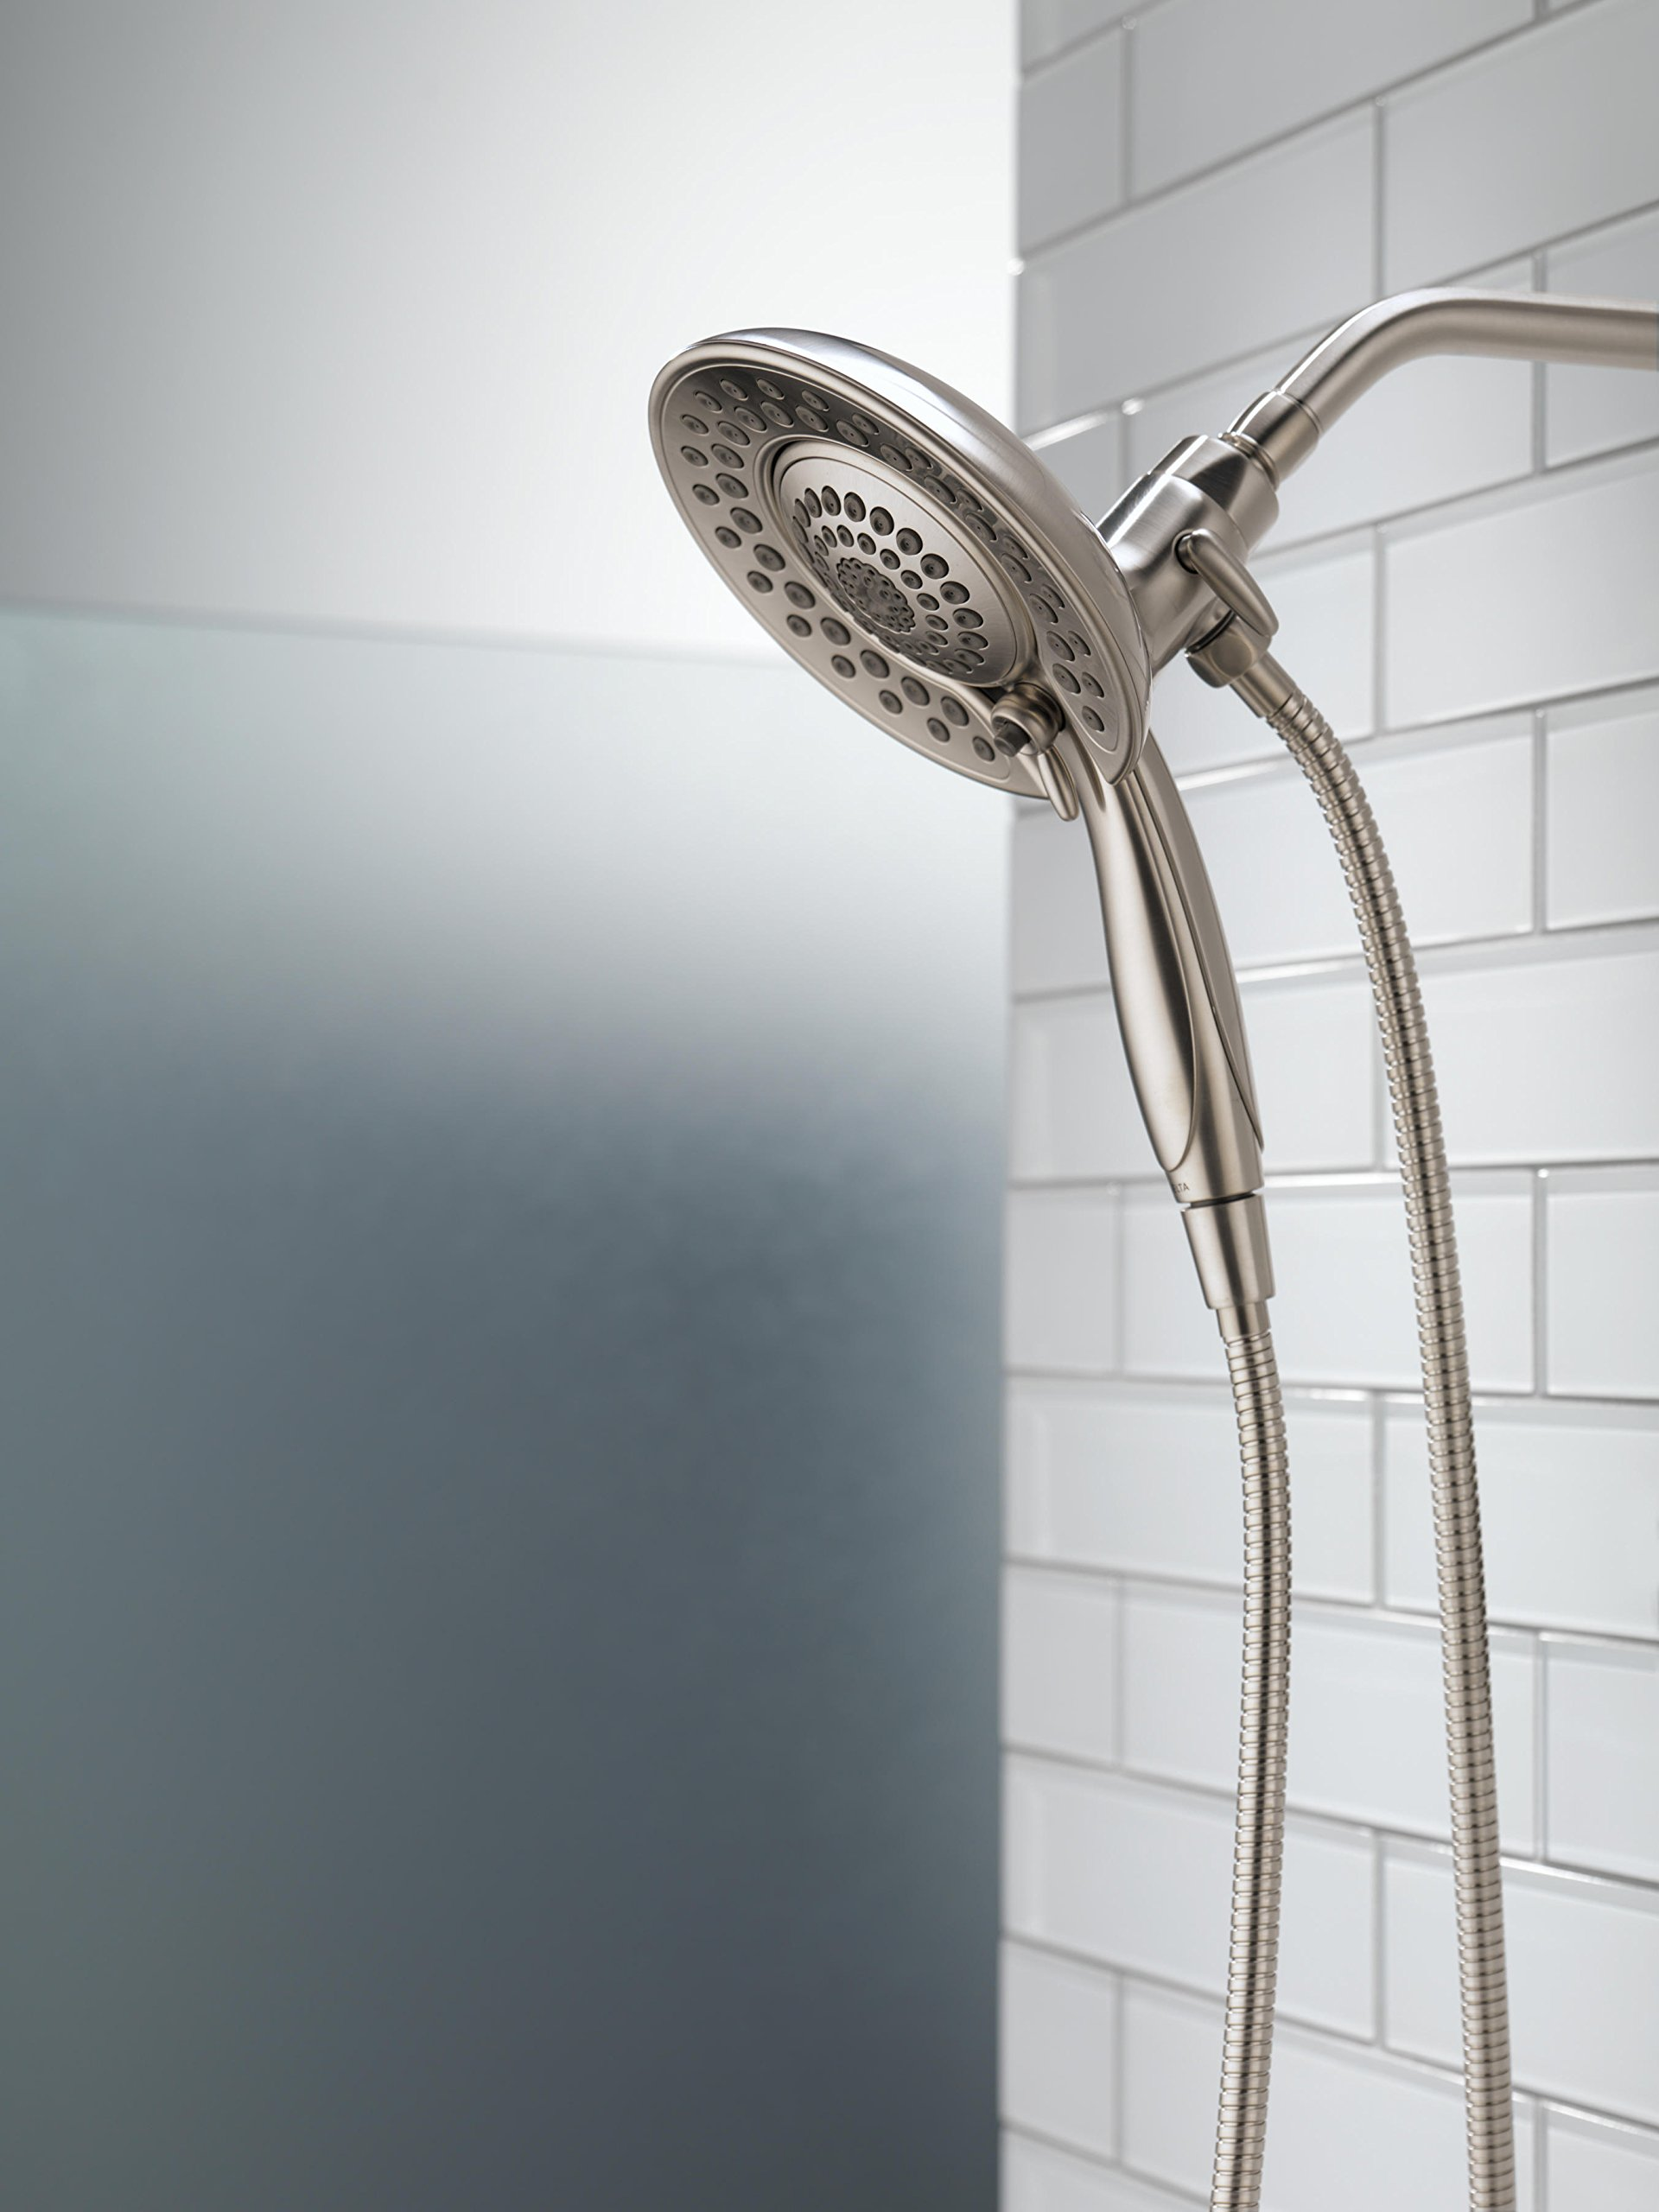 Delta 58569-SS-PK 5-Spray Touch Clean In2ition 2-in-1 Hand Held Shower Head with Hose, Stainless by DELTA FAUCET (Image #8)